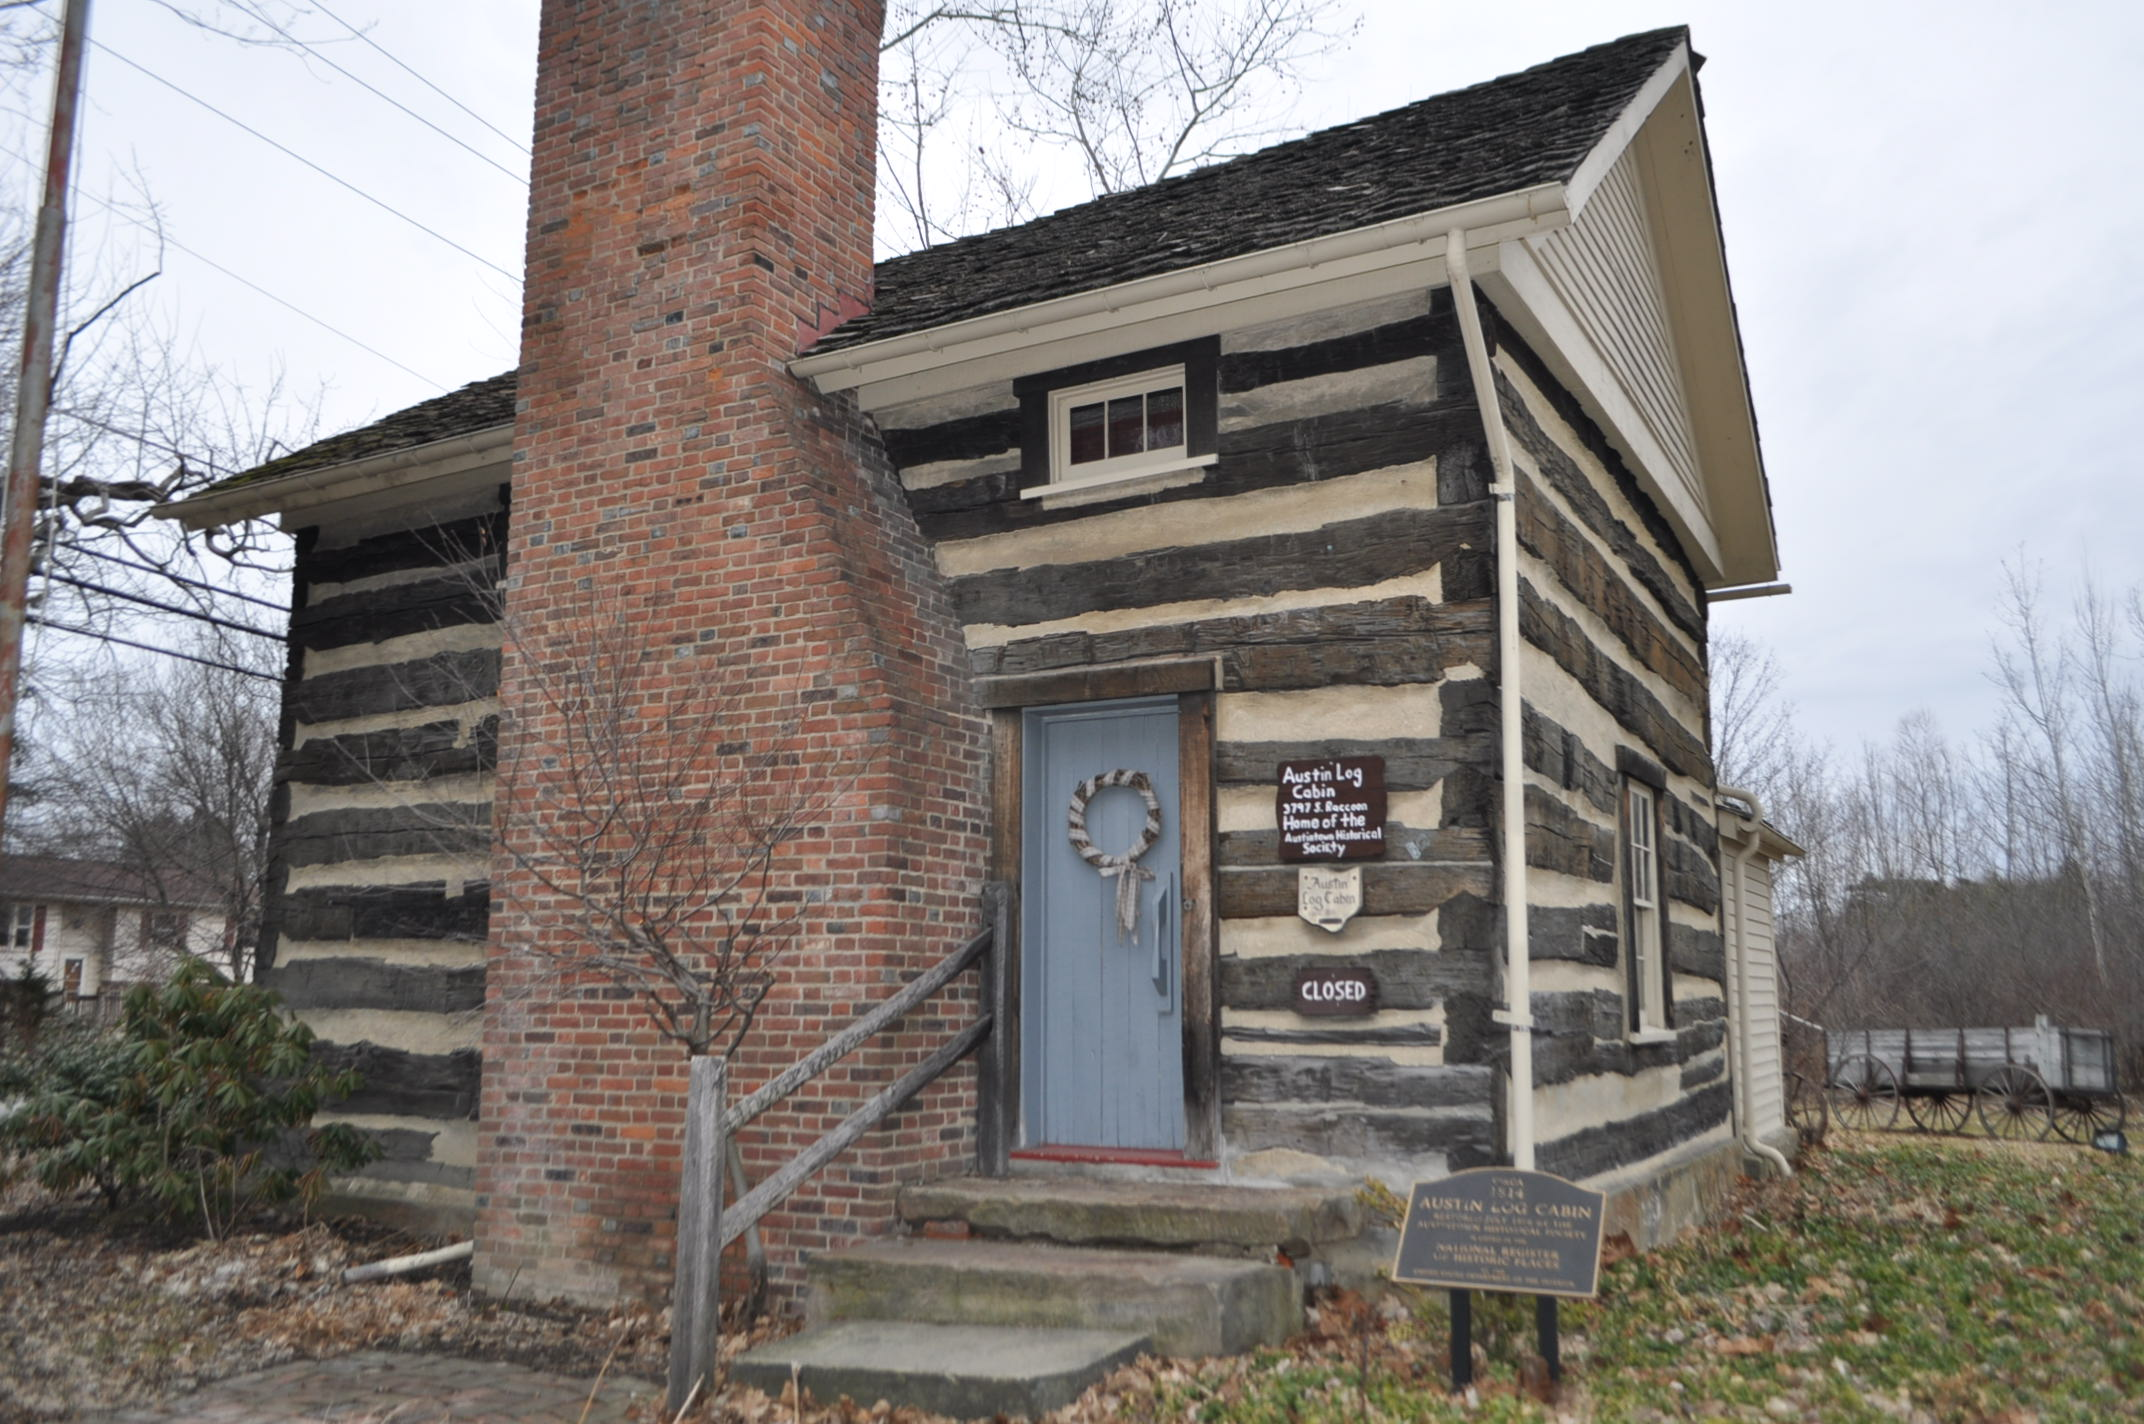 Austintown Log House is a log cabin near Youngstown, Ohio, listed on the National Register of Historic Places on 1974-07-30. It is managed by the Austintown Historical Society and commonly known as the